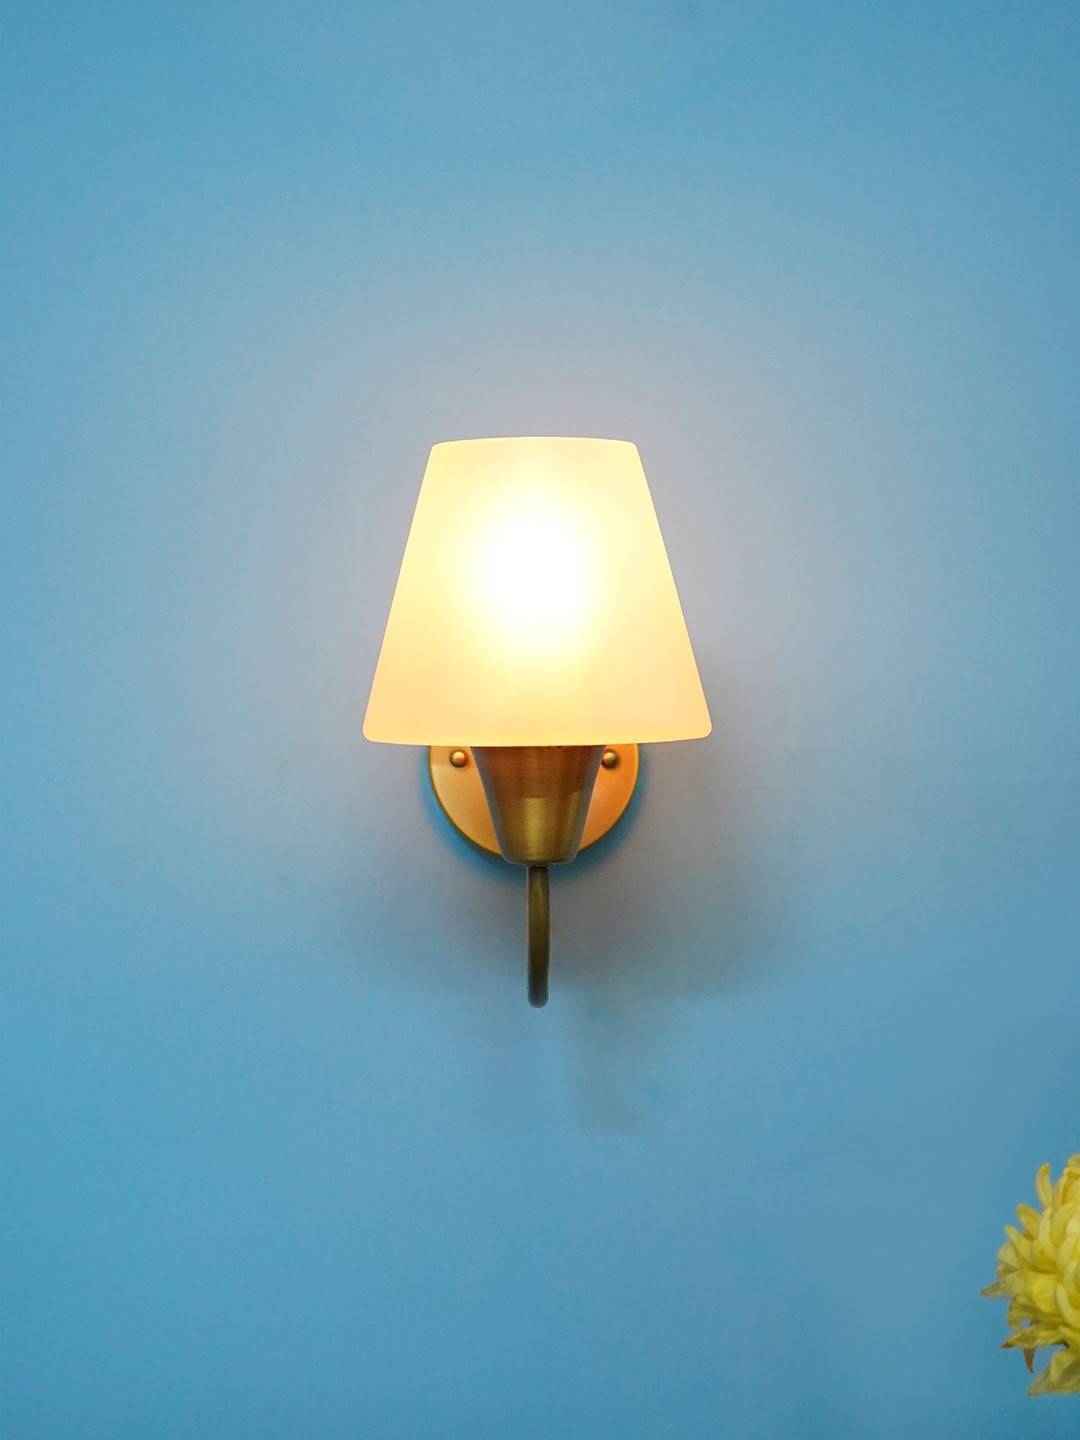 Gooseneck Brass Swivel Wall Sconce with Tapered Frosted Glass Shade